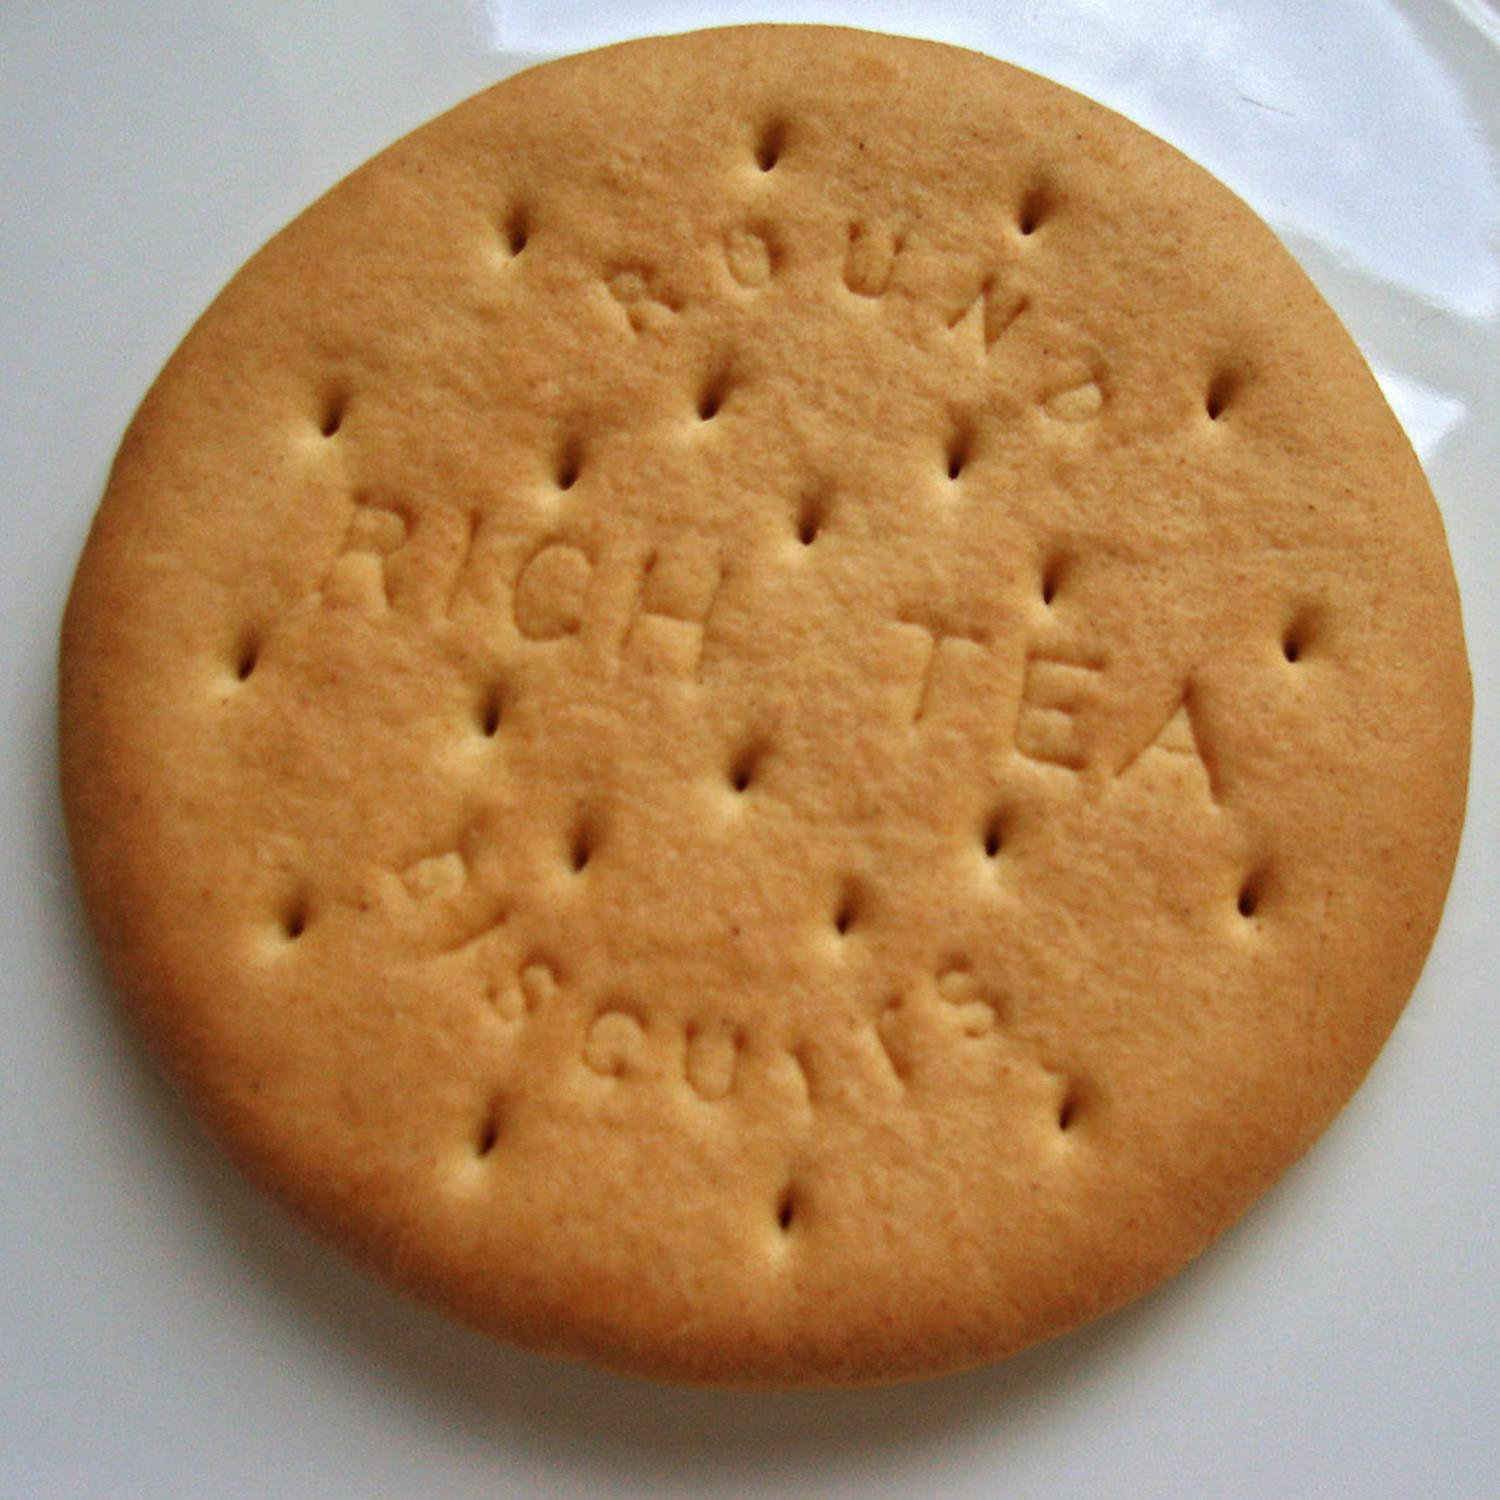 thumbnail 5 - Lyons Rich Tea Biscuits 300g, Great for a morning or afternoon snack